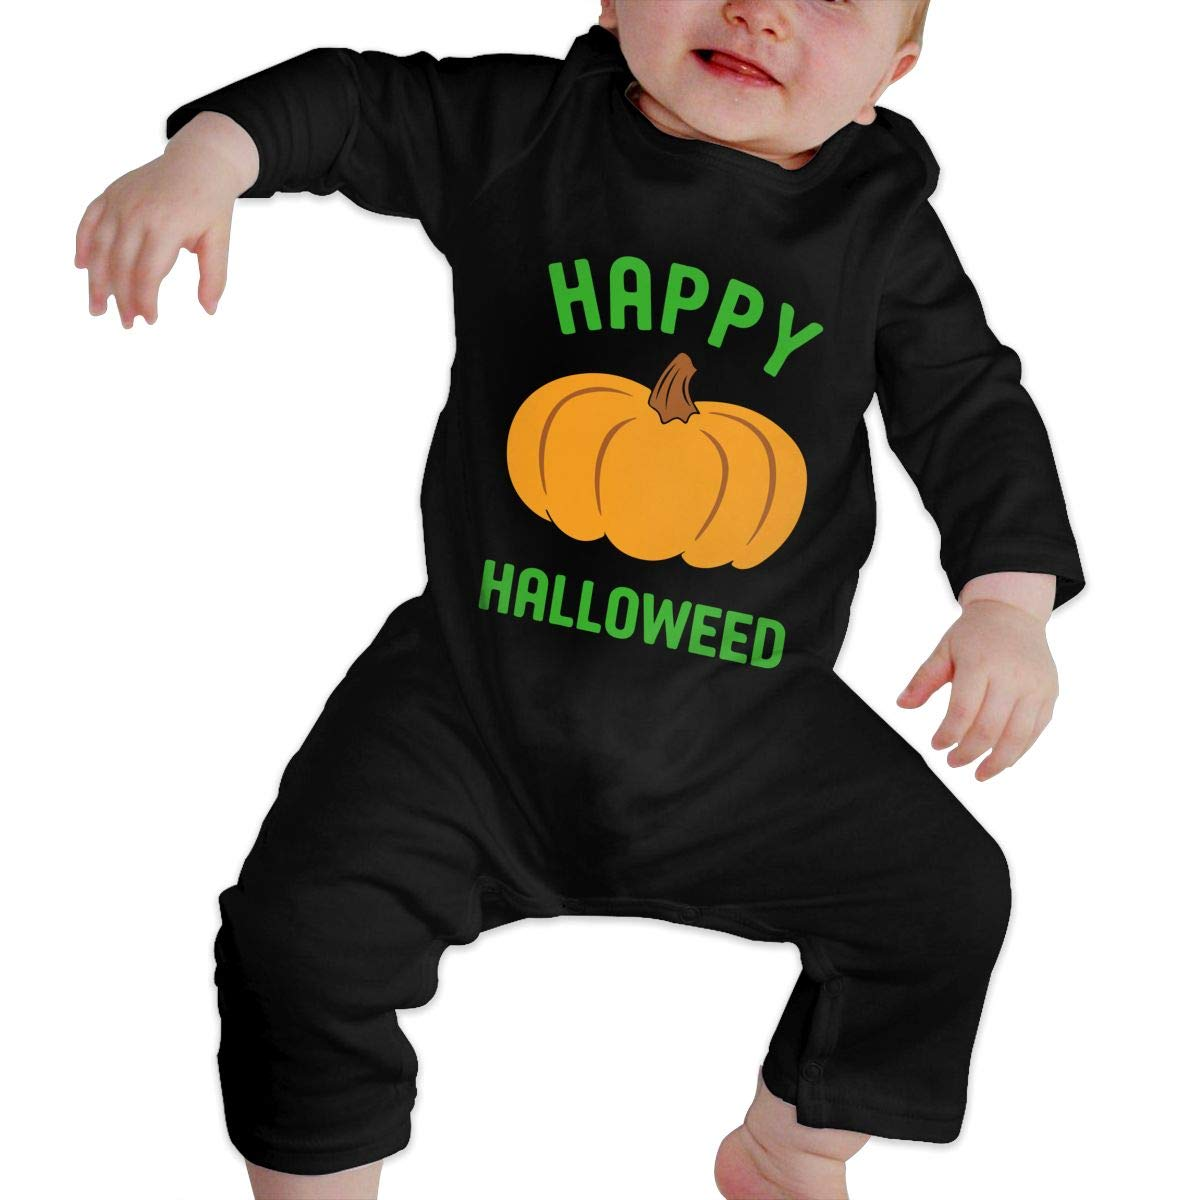 Mri-le1 Toddler Baby Boy Girl Jumpsuit Happy Halloweed Funny Toddler Jumpsuit